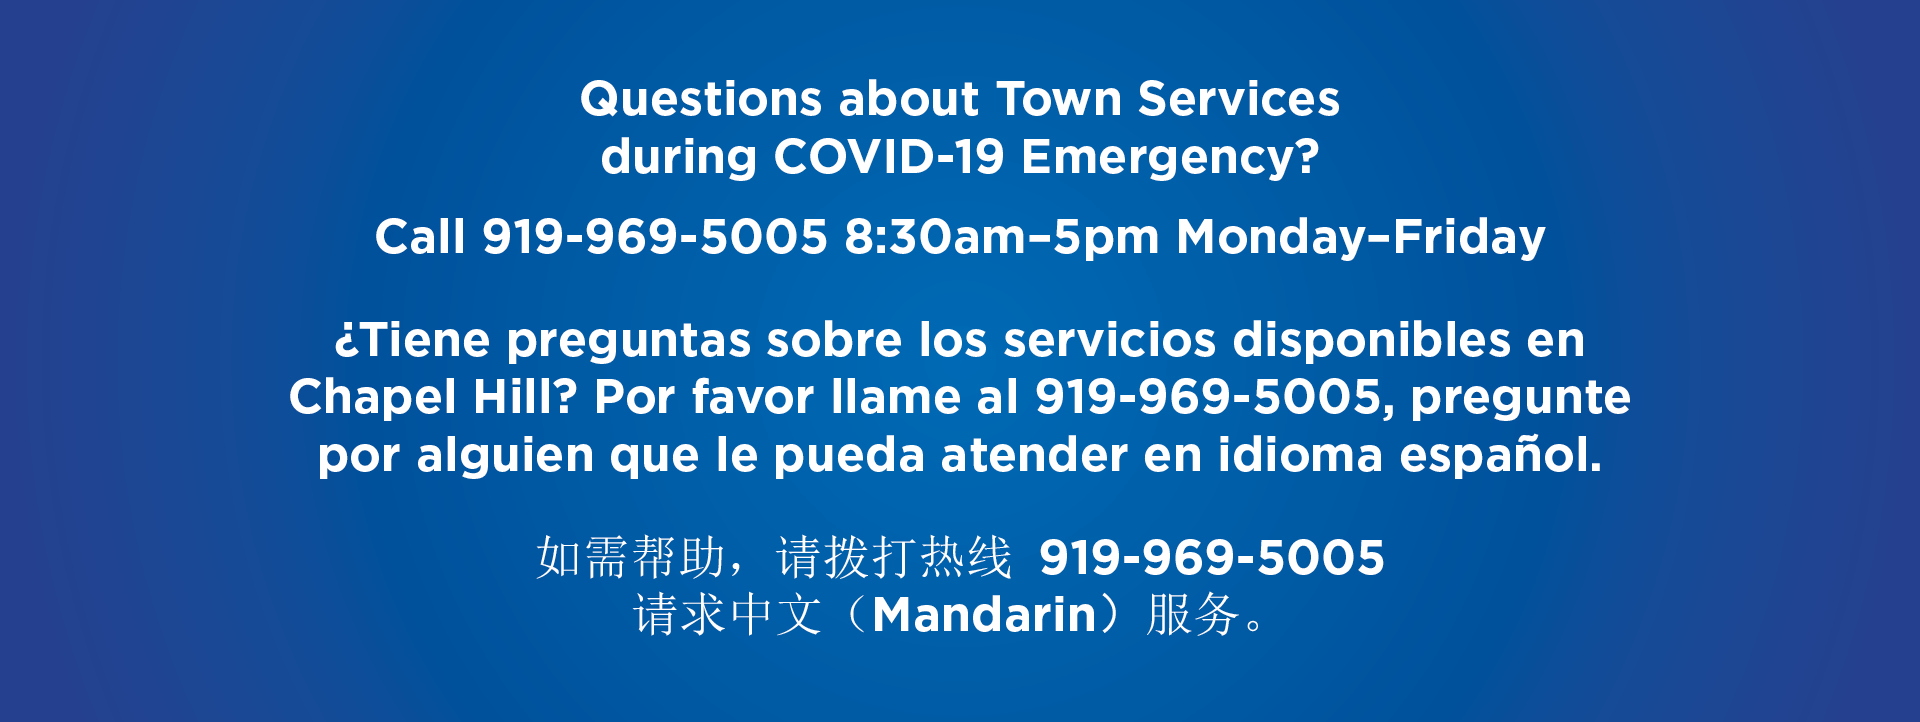 Coronavirus Questions? The Call Center is open! 919-969-5005 8:30 a.m. to 5 p.m. Monday through Friday